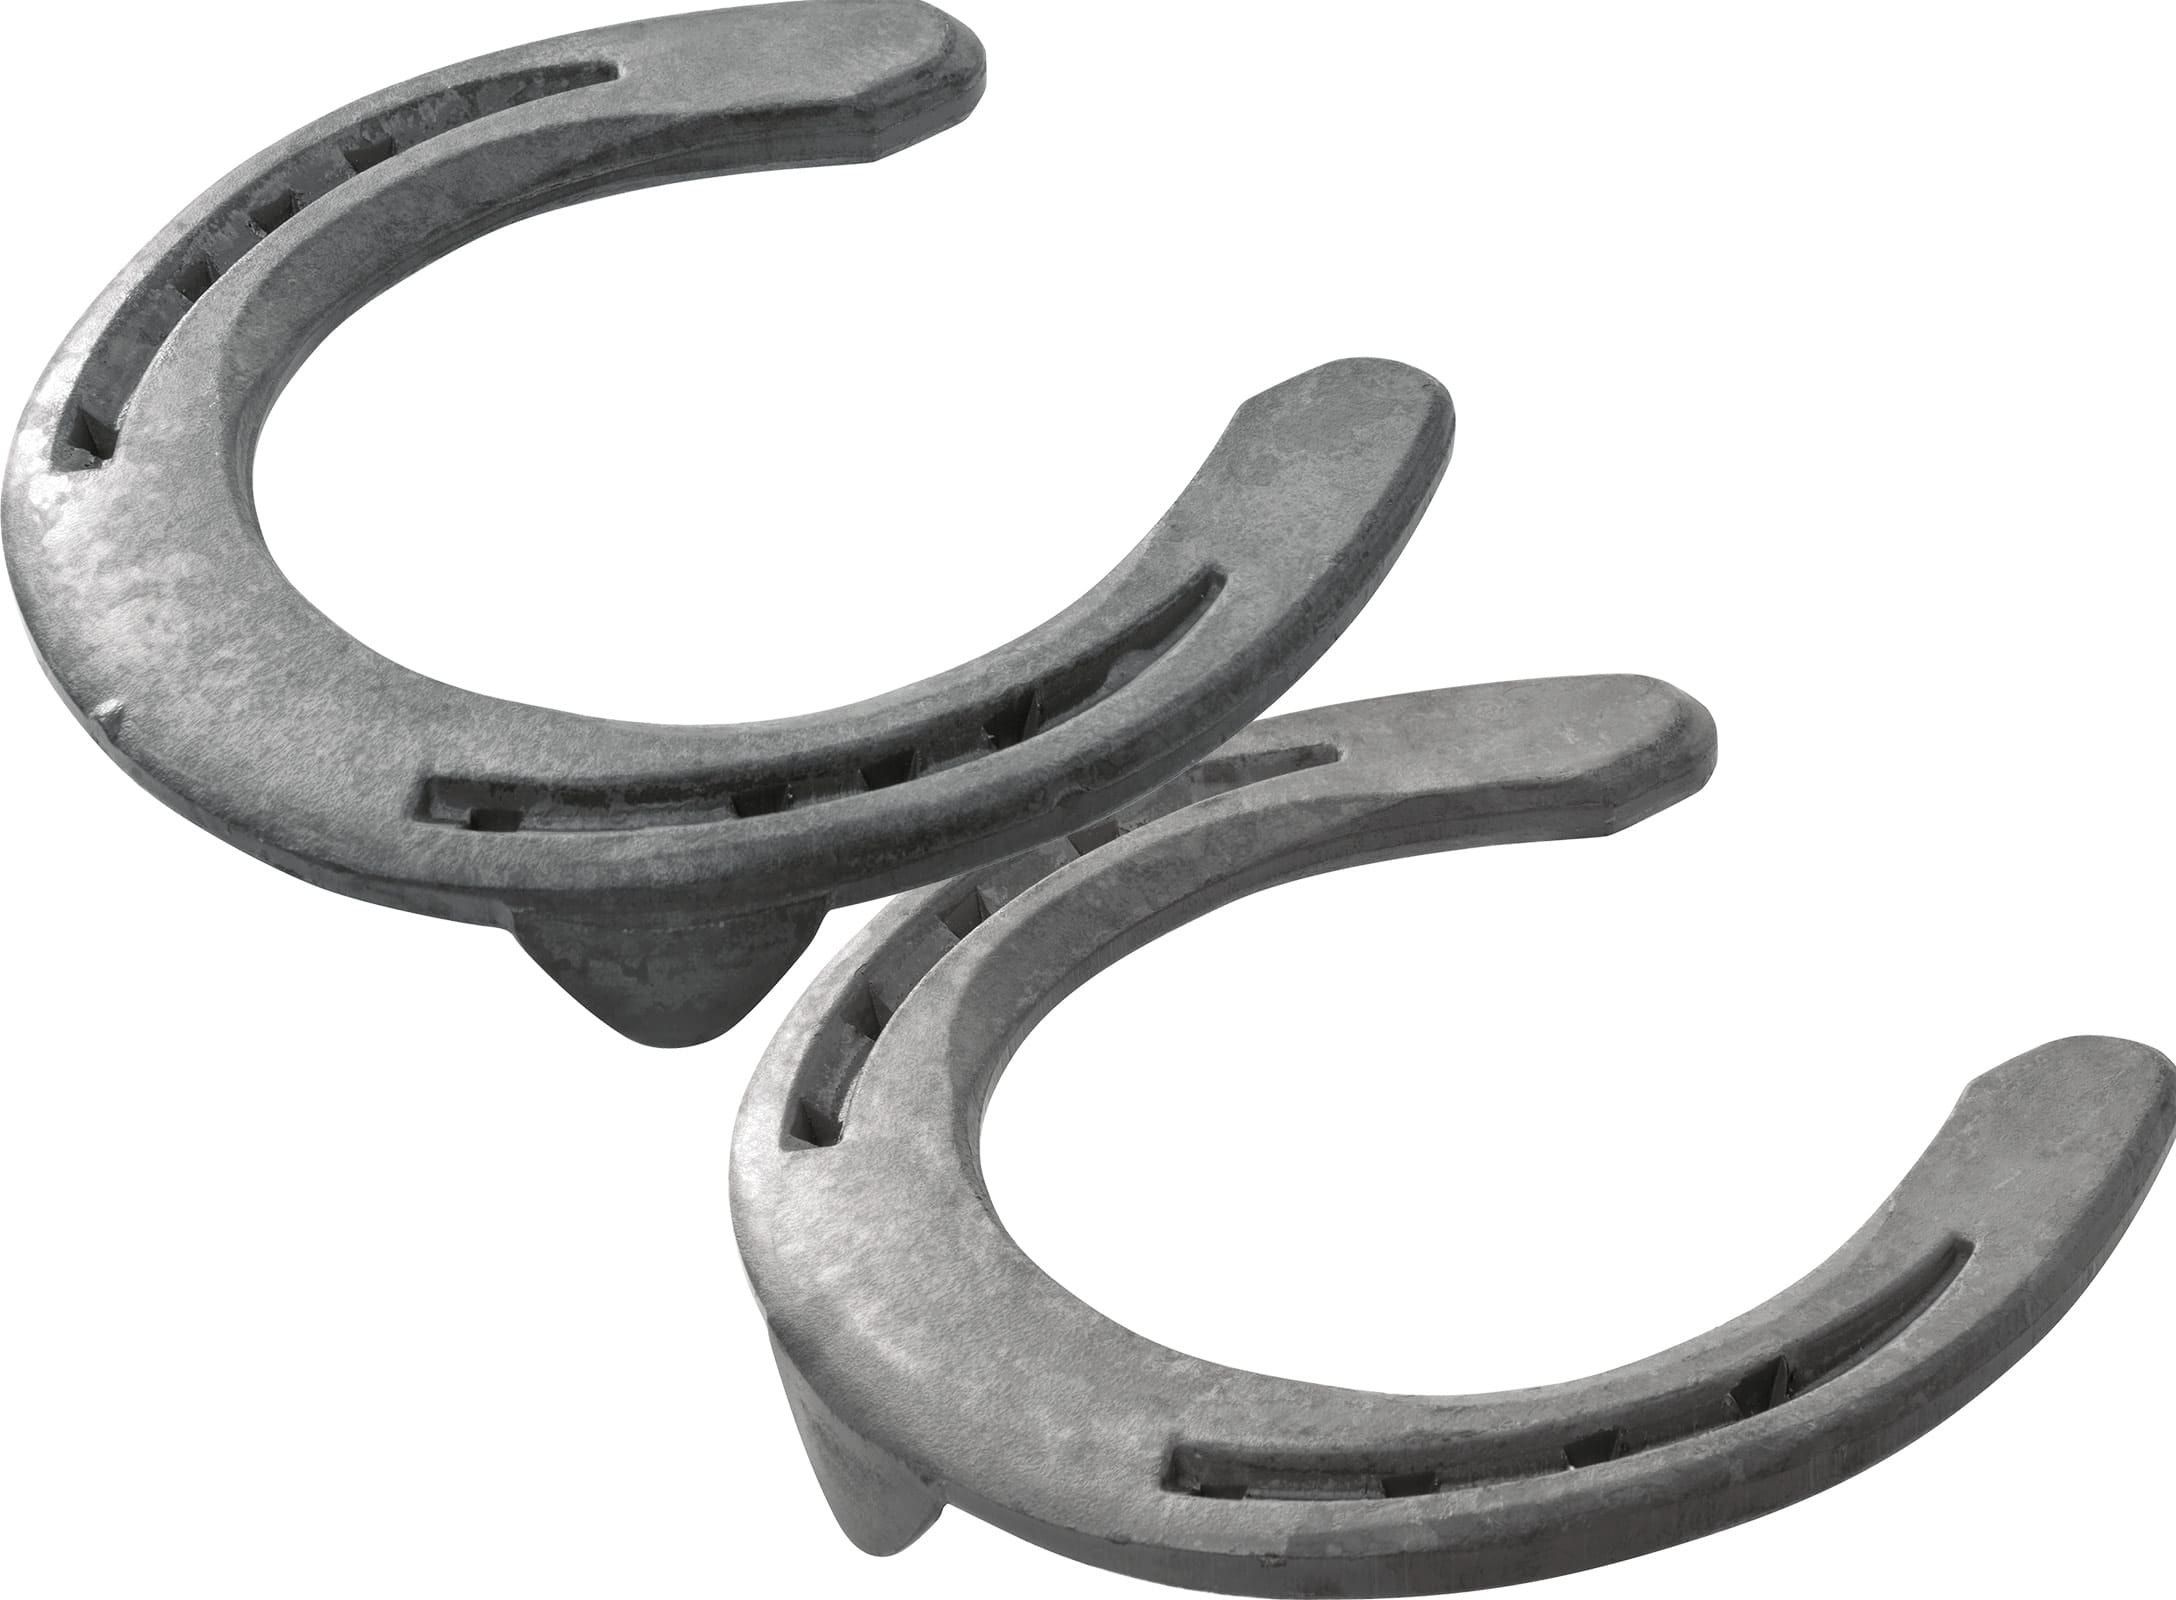 Mustad Equi-Librium horseshoes, front, side clips and toe clip, 3D bottom view